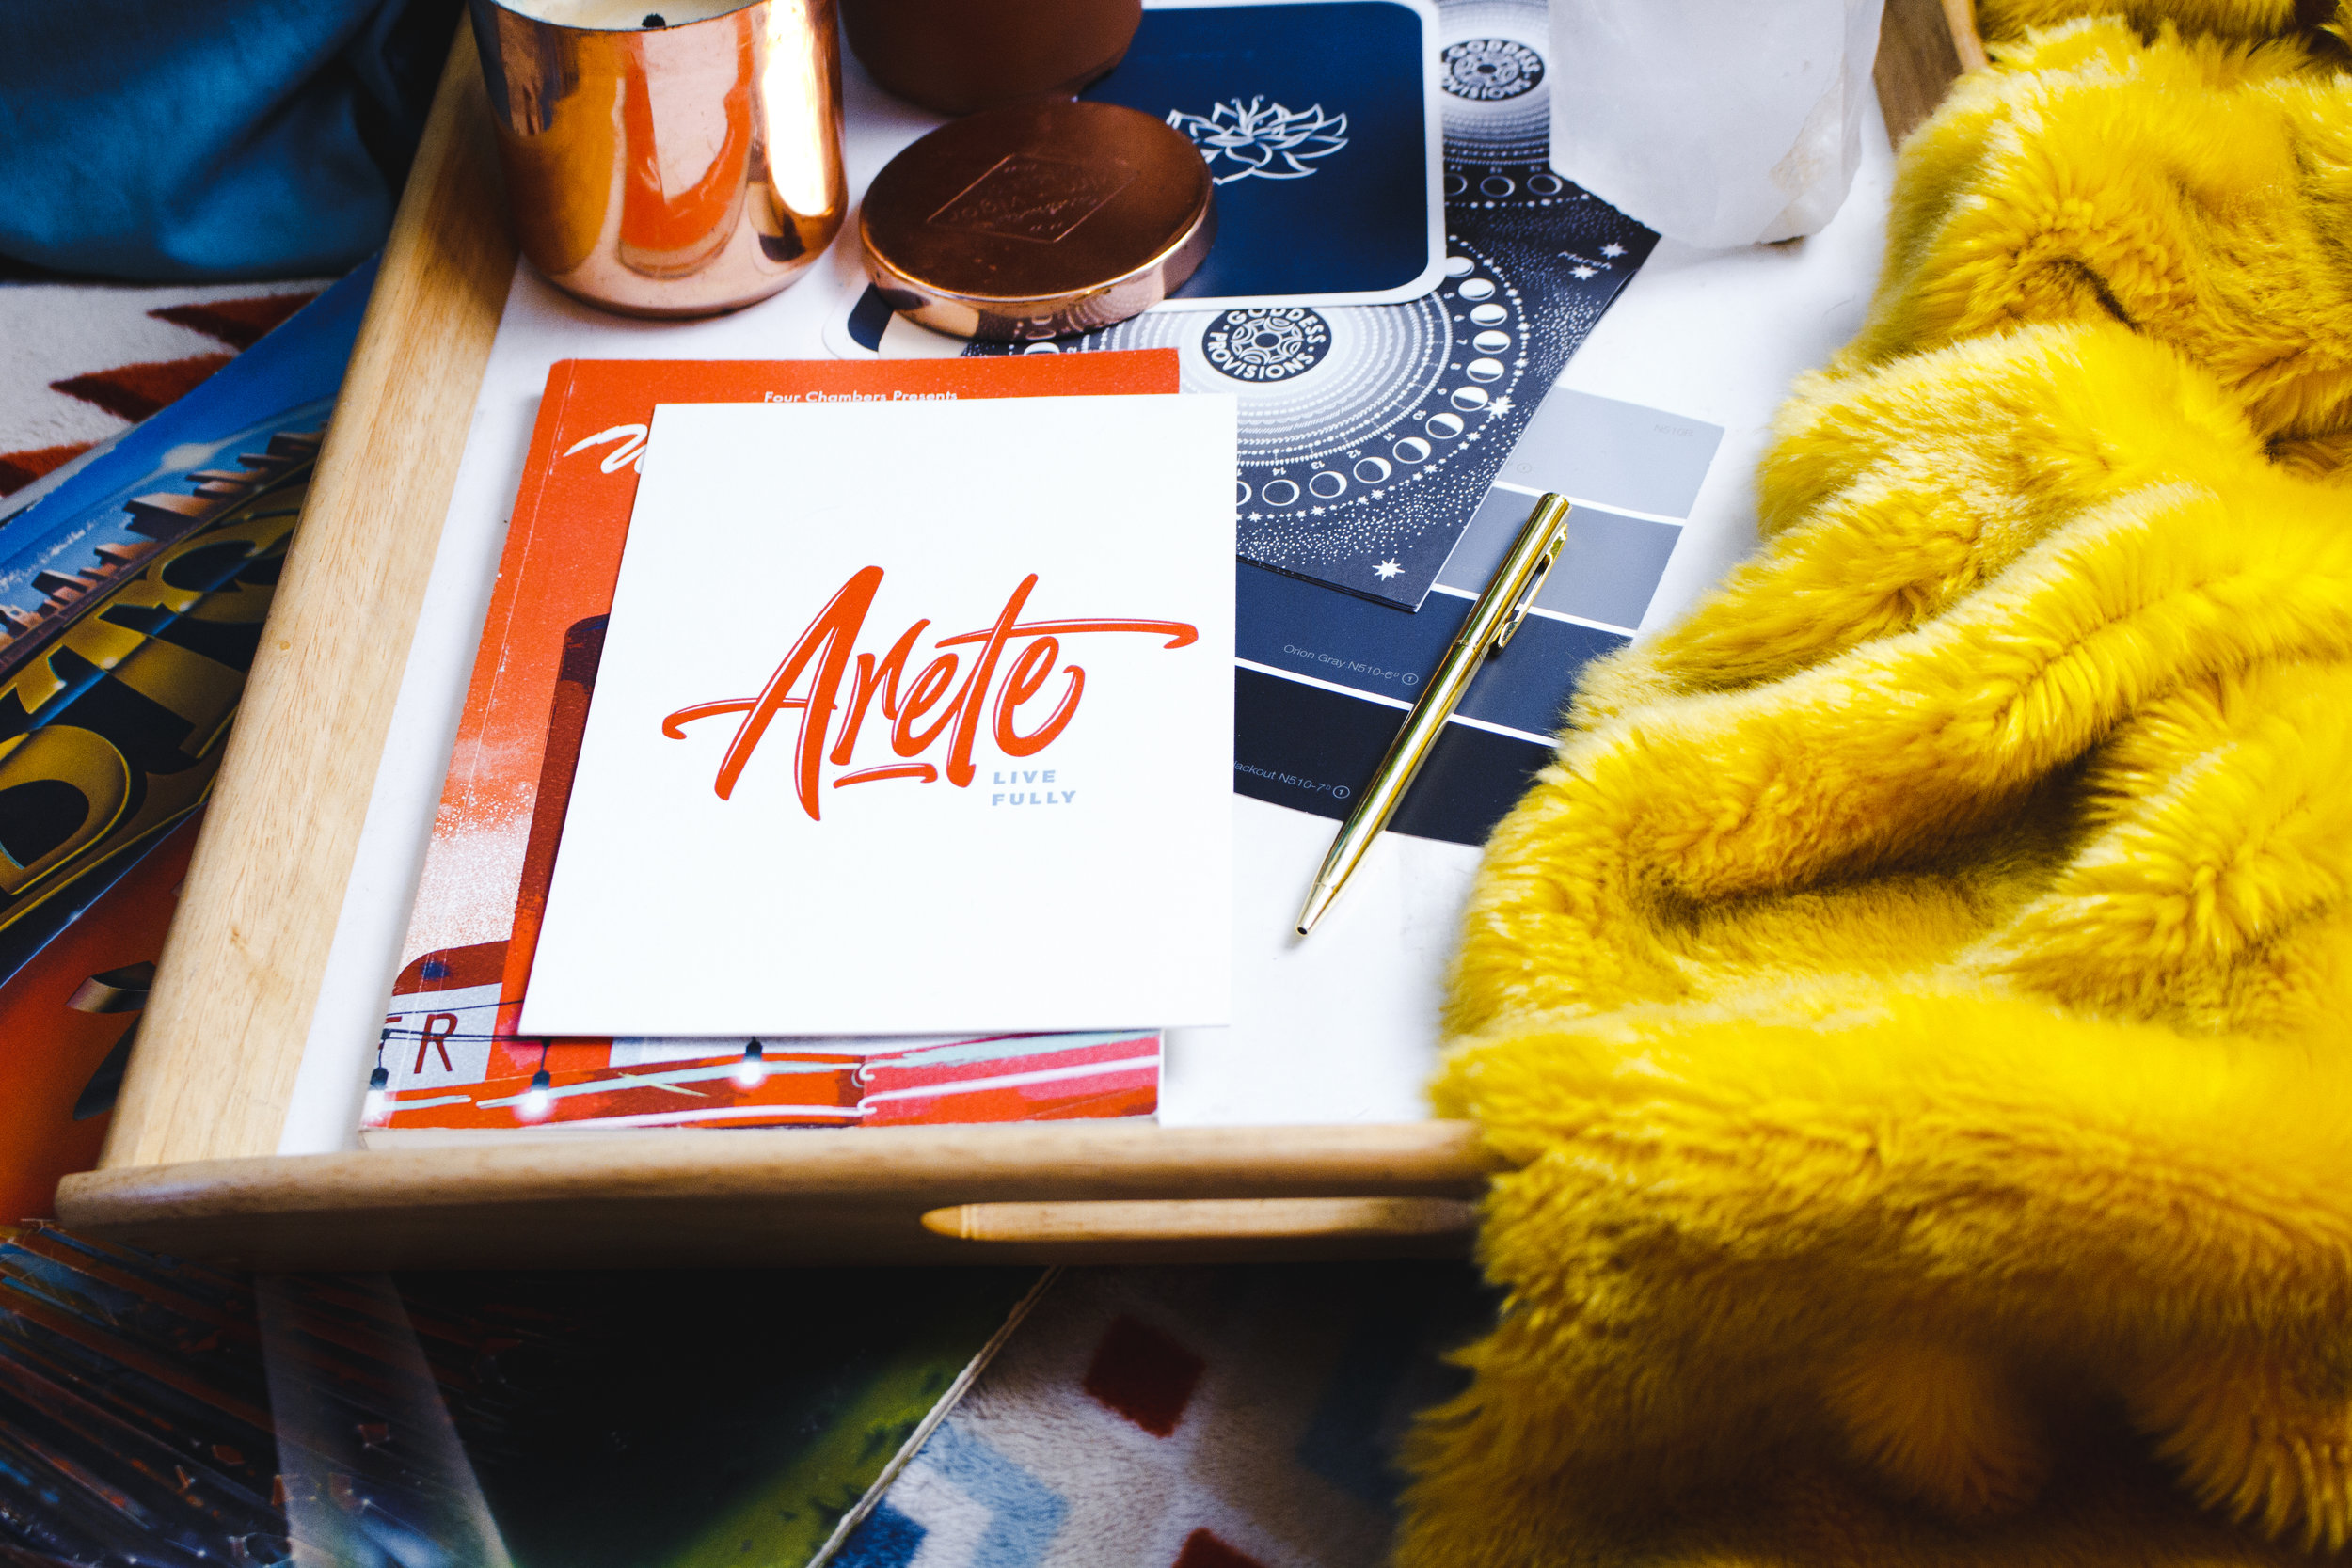 Table full of art and branding materials and color palette